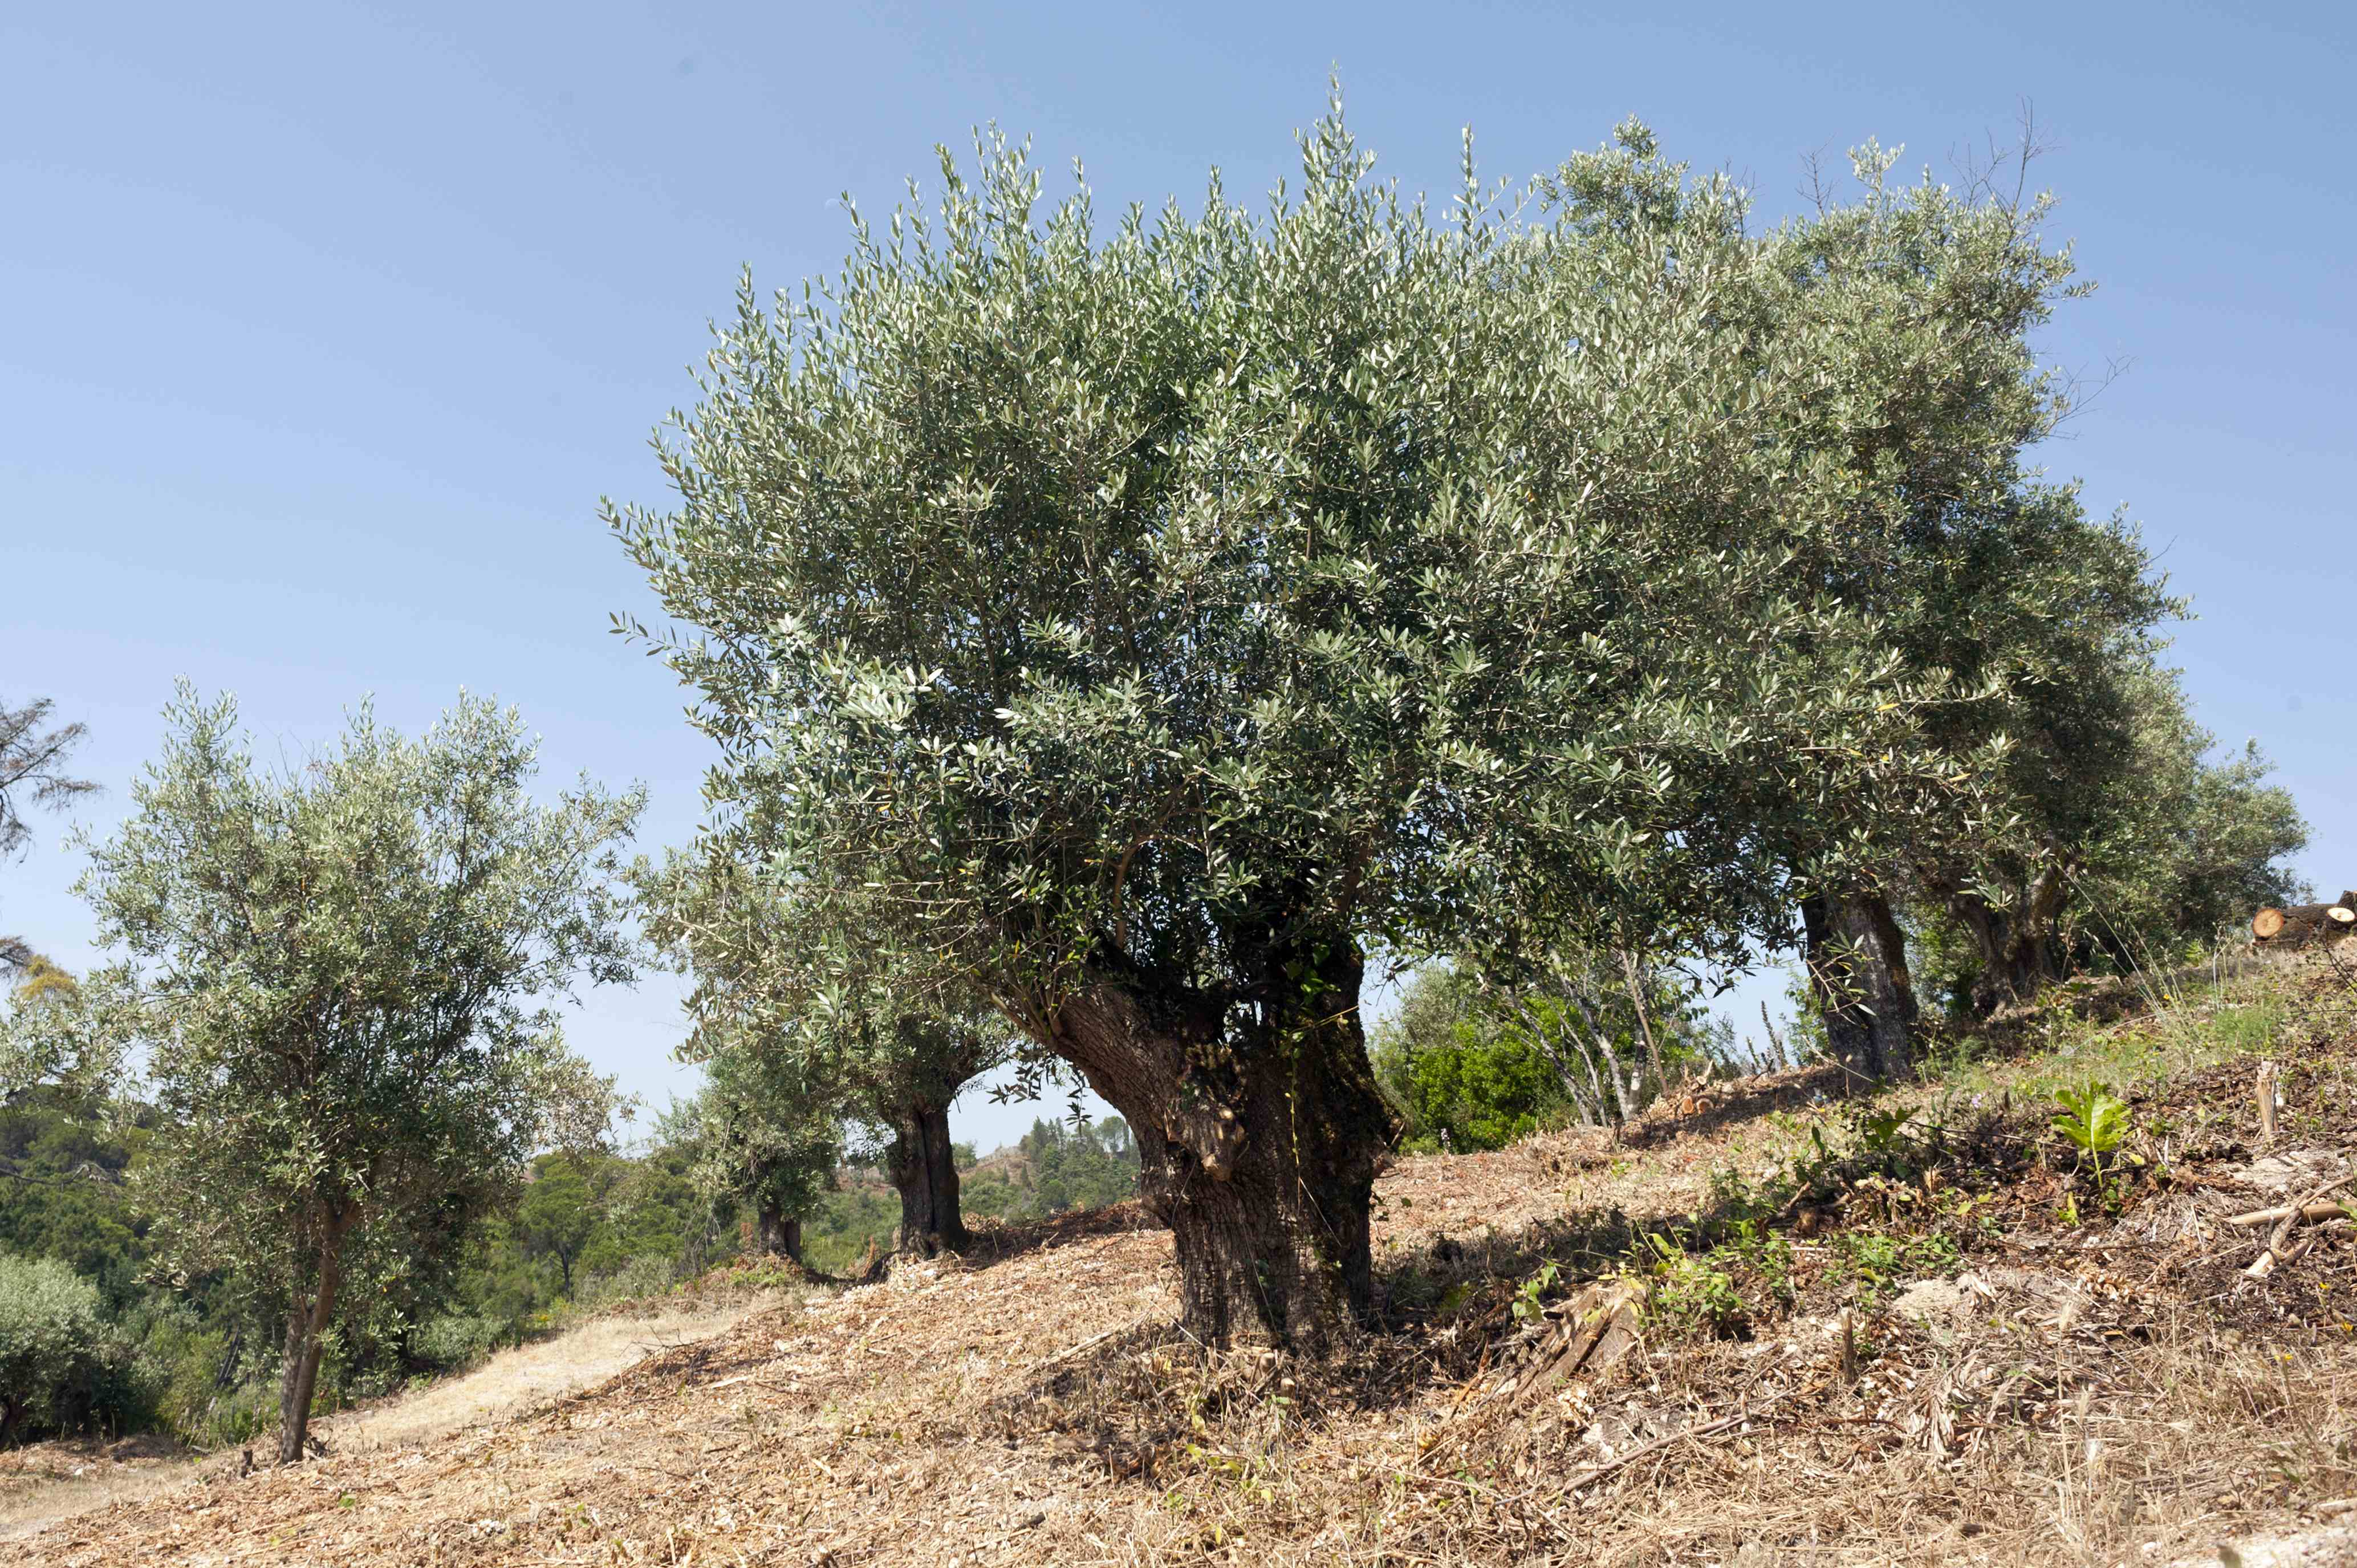 In the Forest of Seven Hills subsist old olive residue, culture marked indelibly the region's landscape to time the friars of Christ.